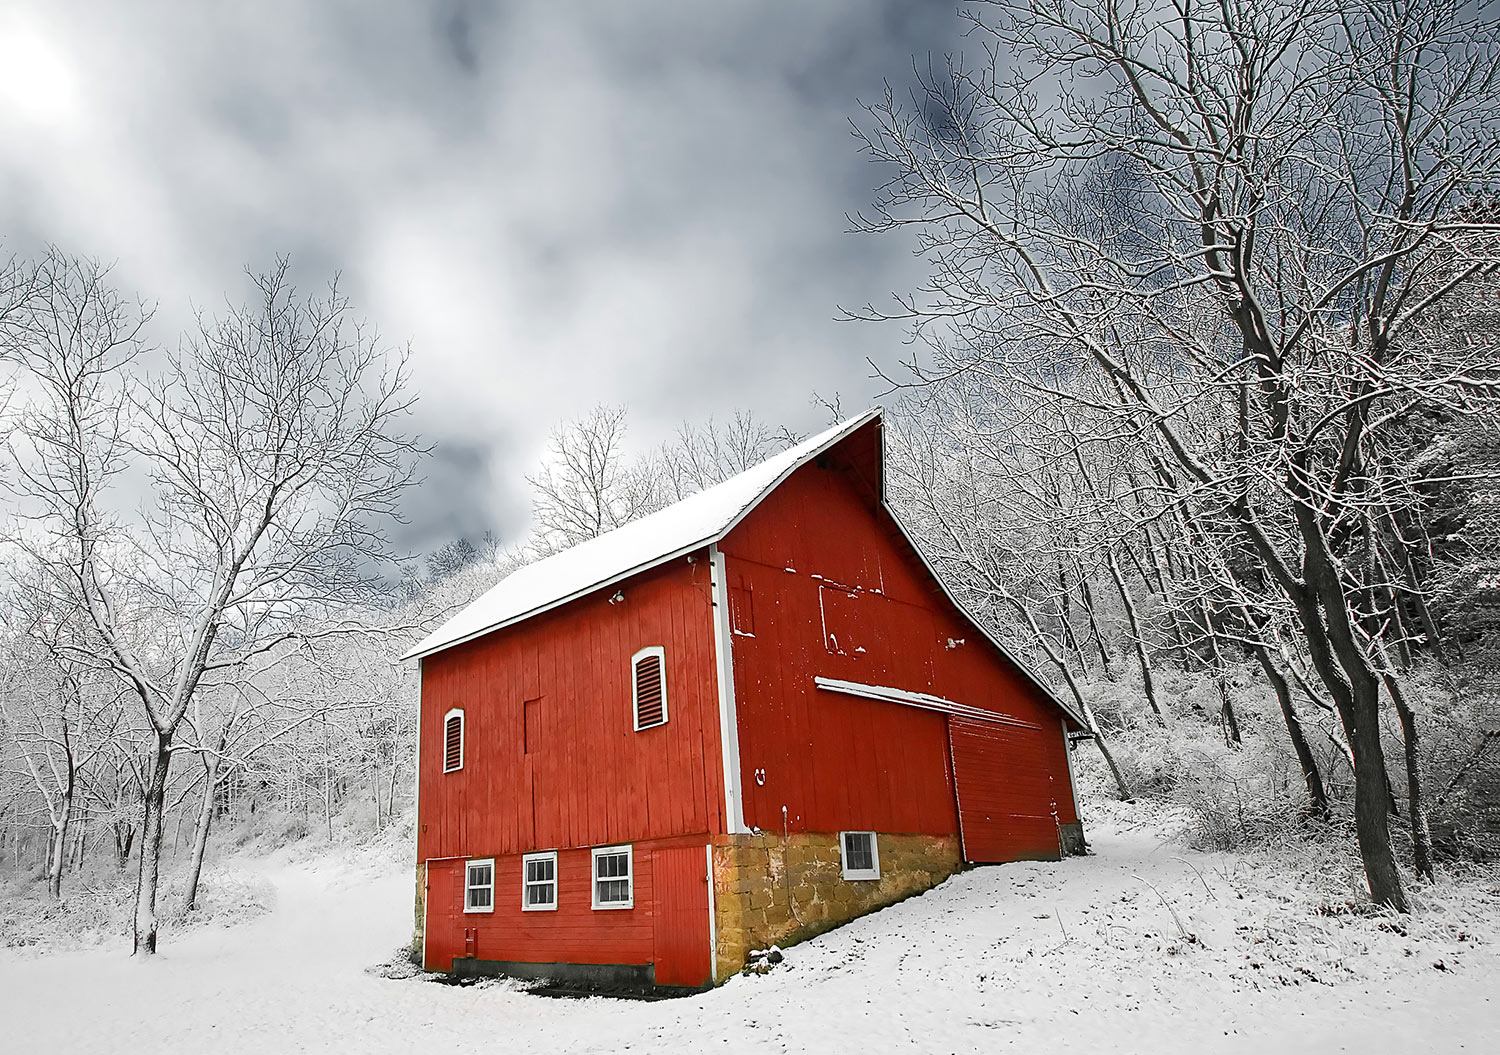 Freshly fallen snow clings to a little red barn on a small farm in the trees.  → Buy a Print